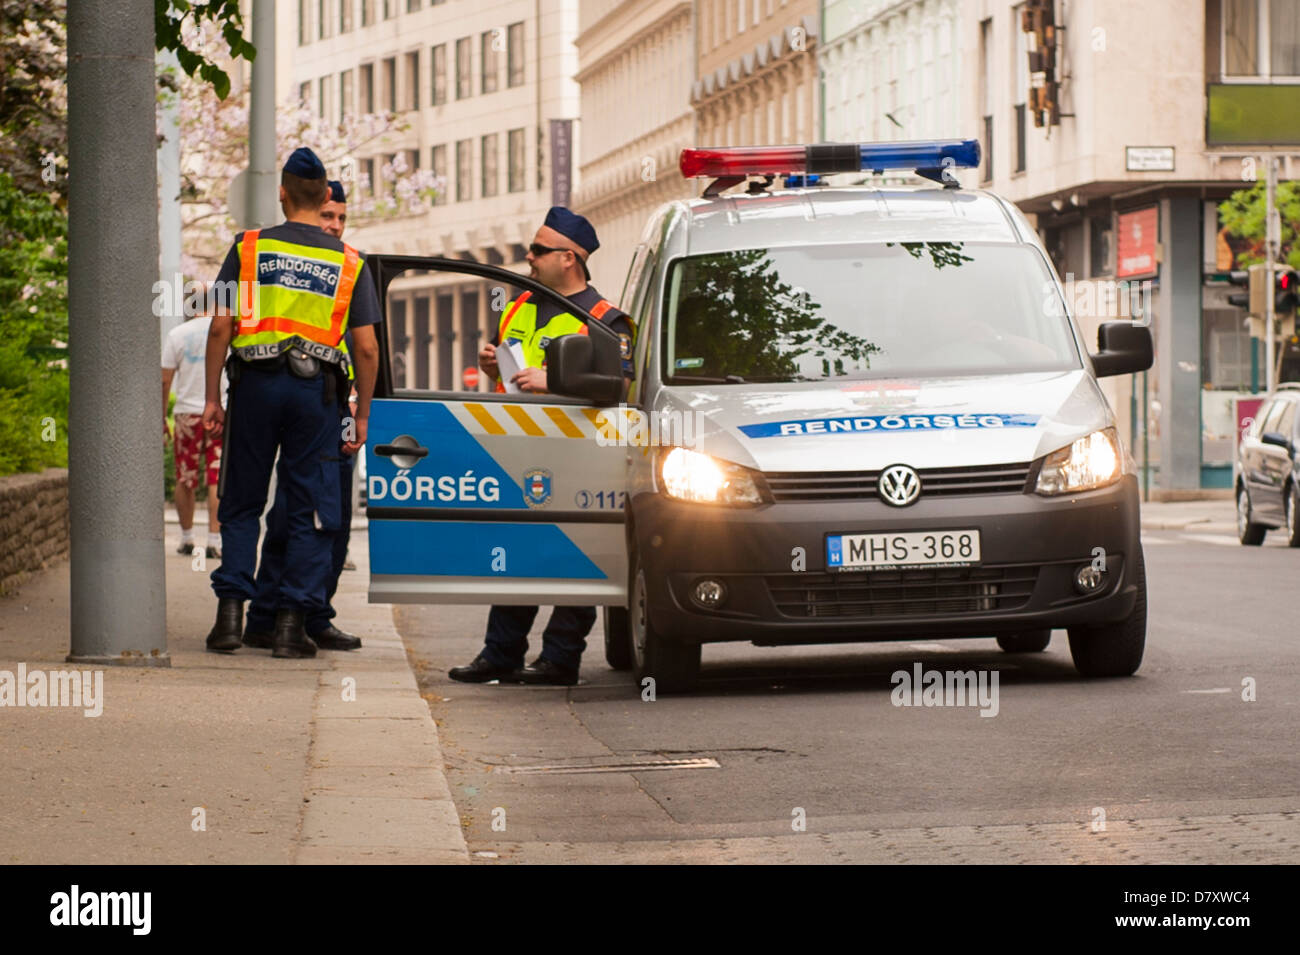 Budapest , Hungary , white blue Rendorseg VW police car 3 three policemen cops stand chatting on pavement - Stock Image